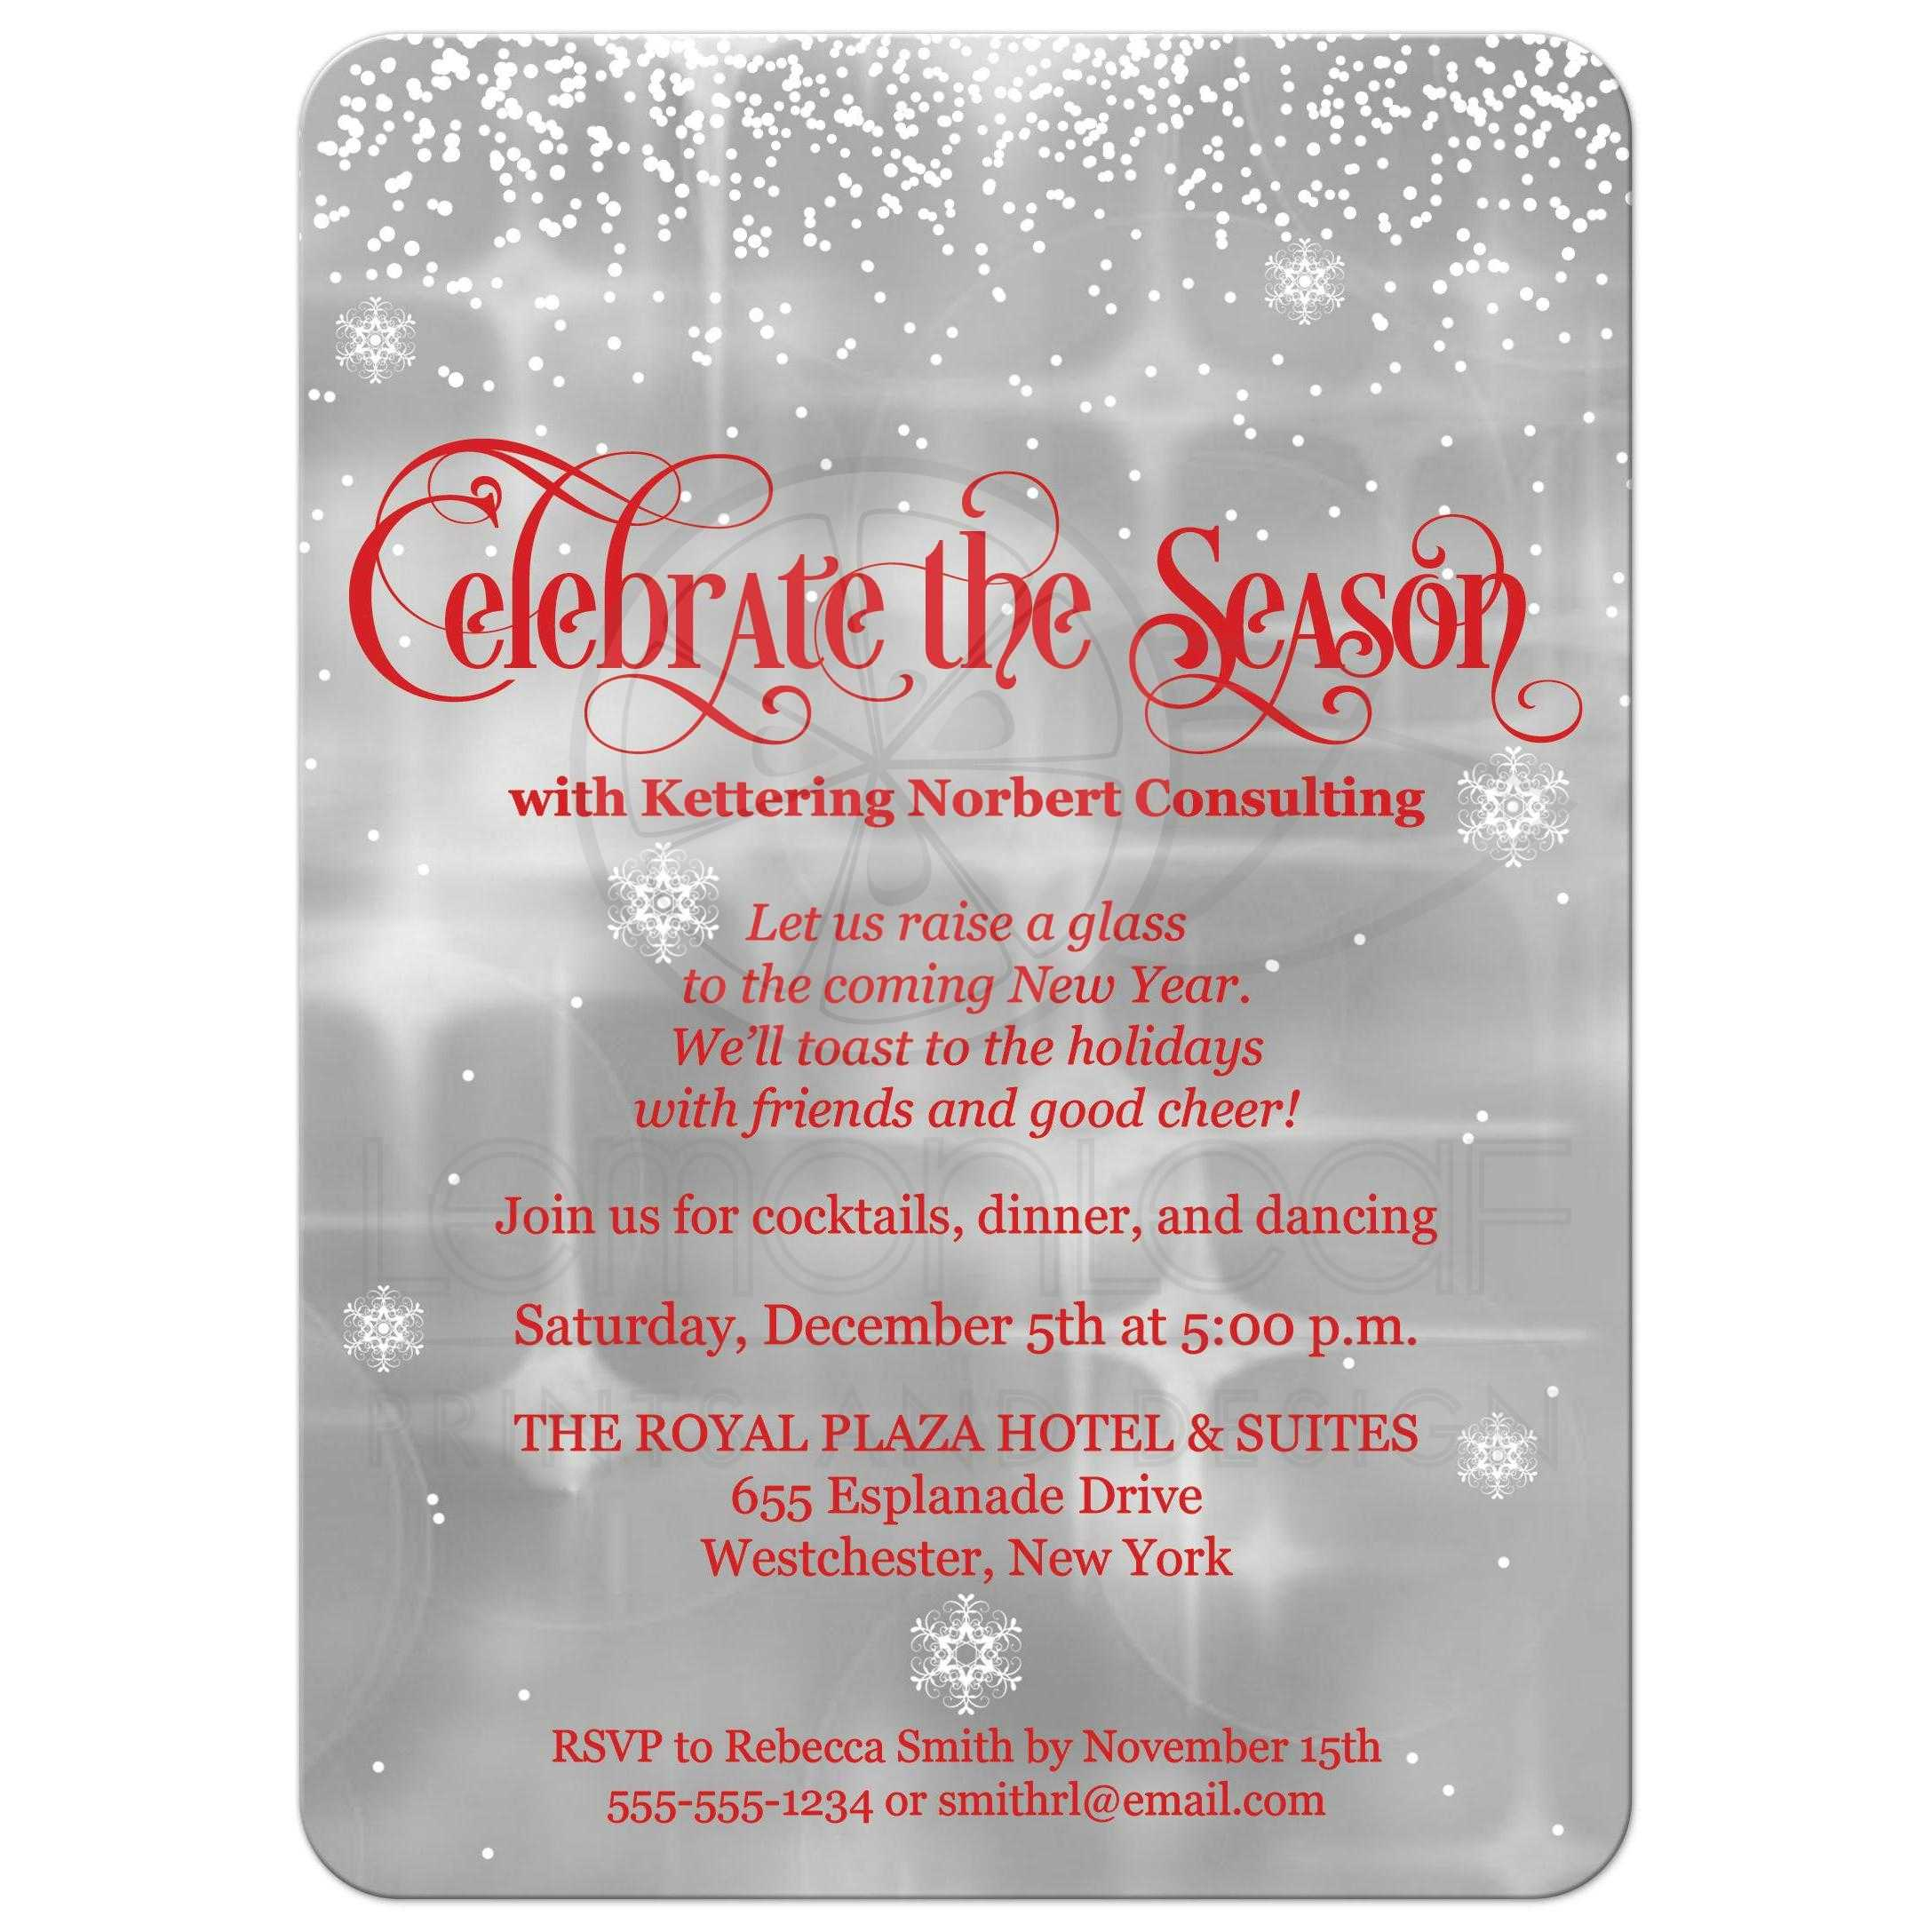 Celebrate the Season Holiday Party Invitation | Red, Gray, White ...